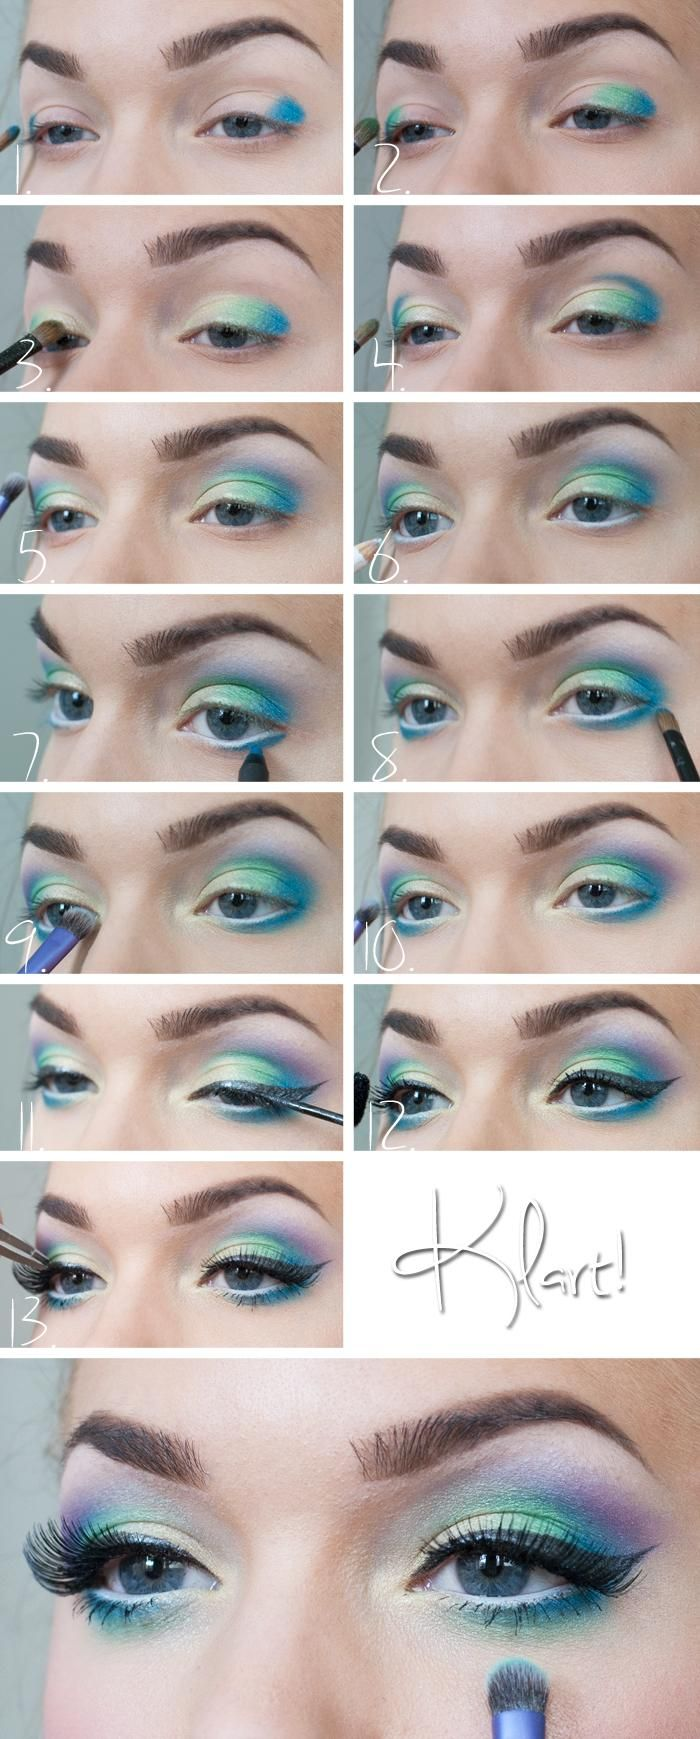 This website is amazing. Tutorials on all kinds or crazy/fun/classy/unique/timeless make up techniques.